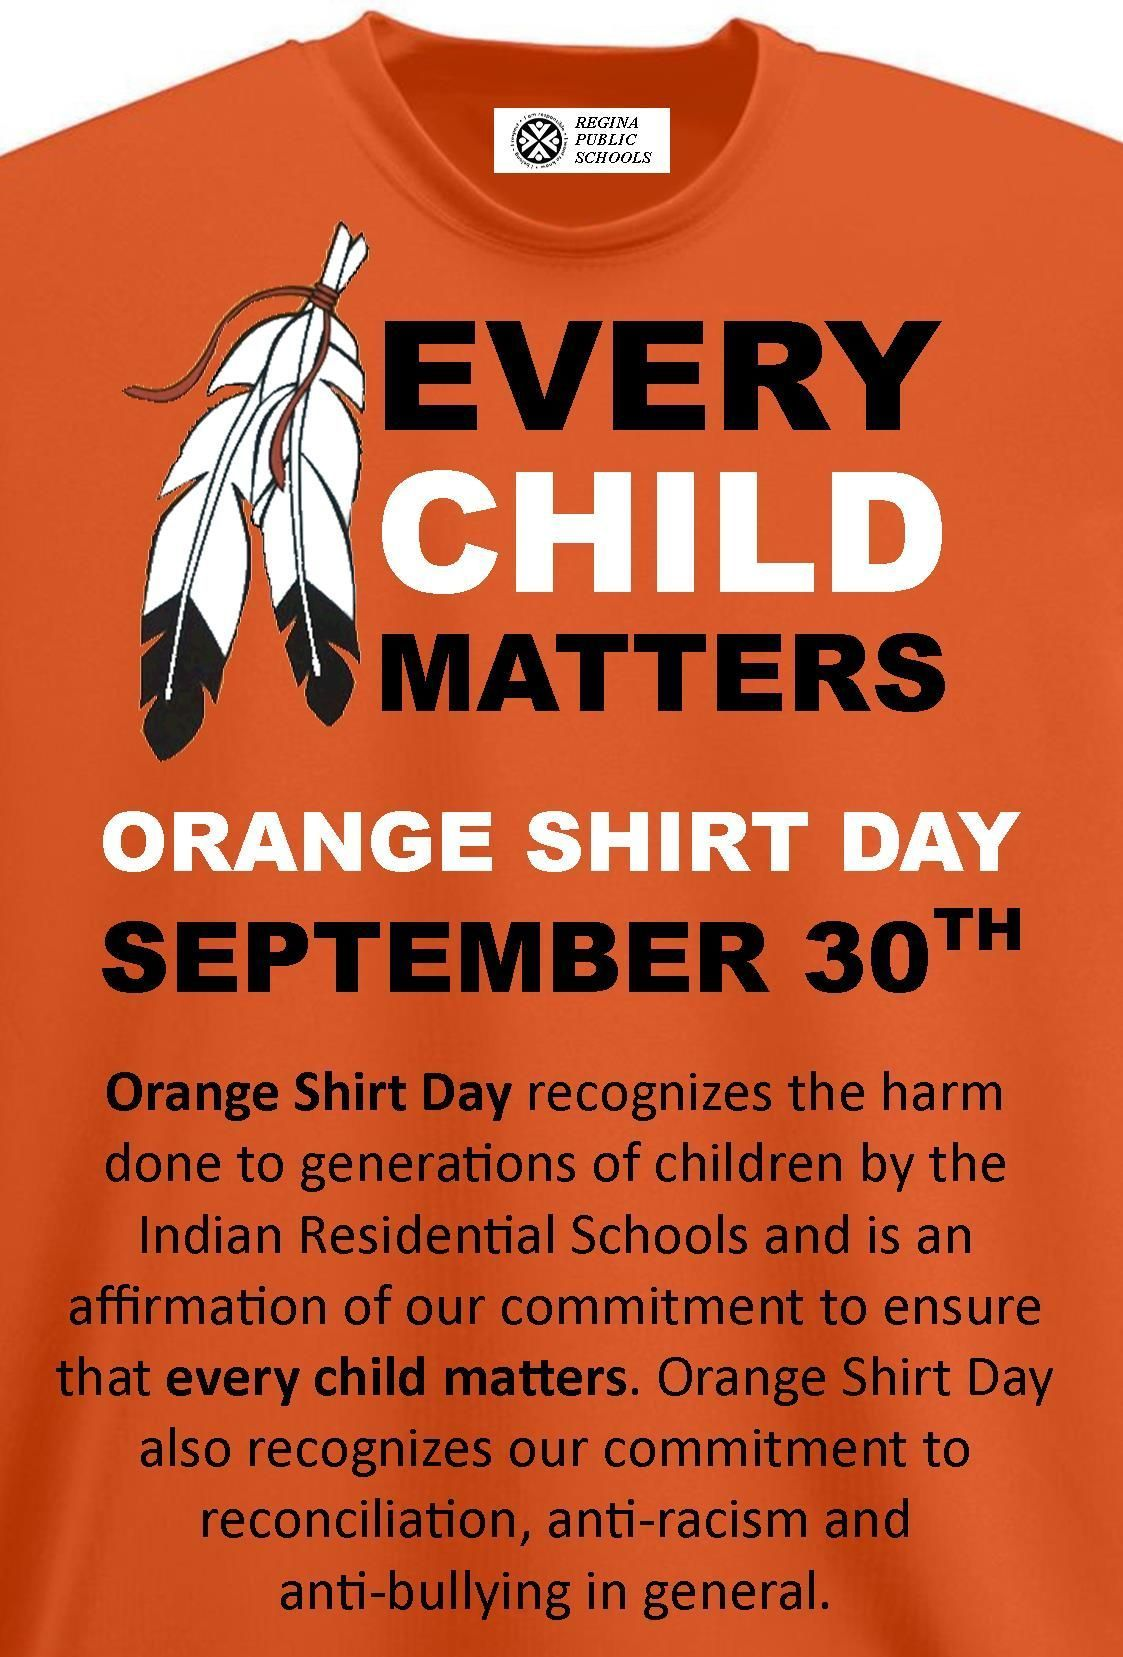 orange shirt day recognizes the harm done to generations of  orange shirt day recognizes the harm done to generations of children by the n residential schools